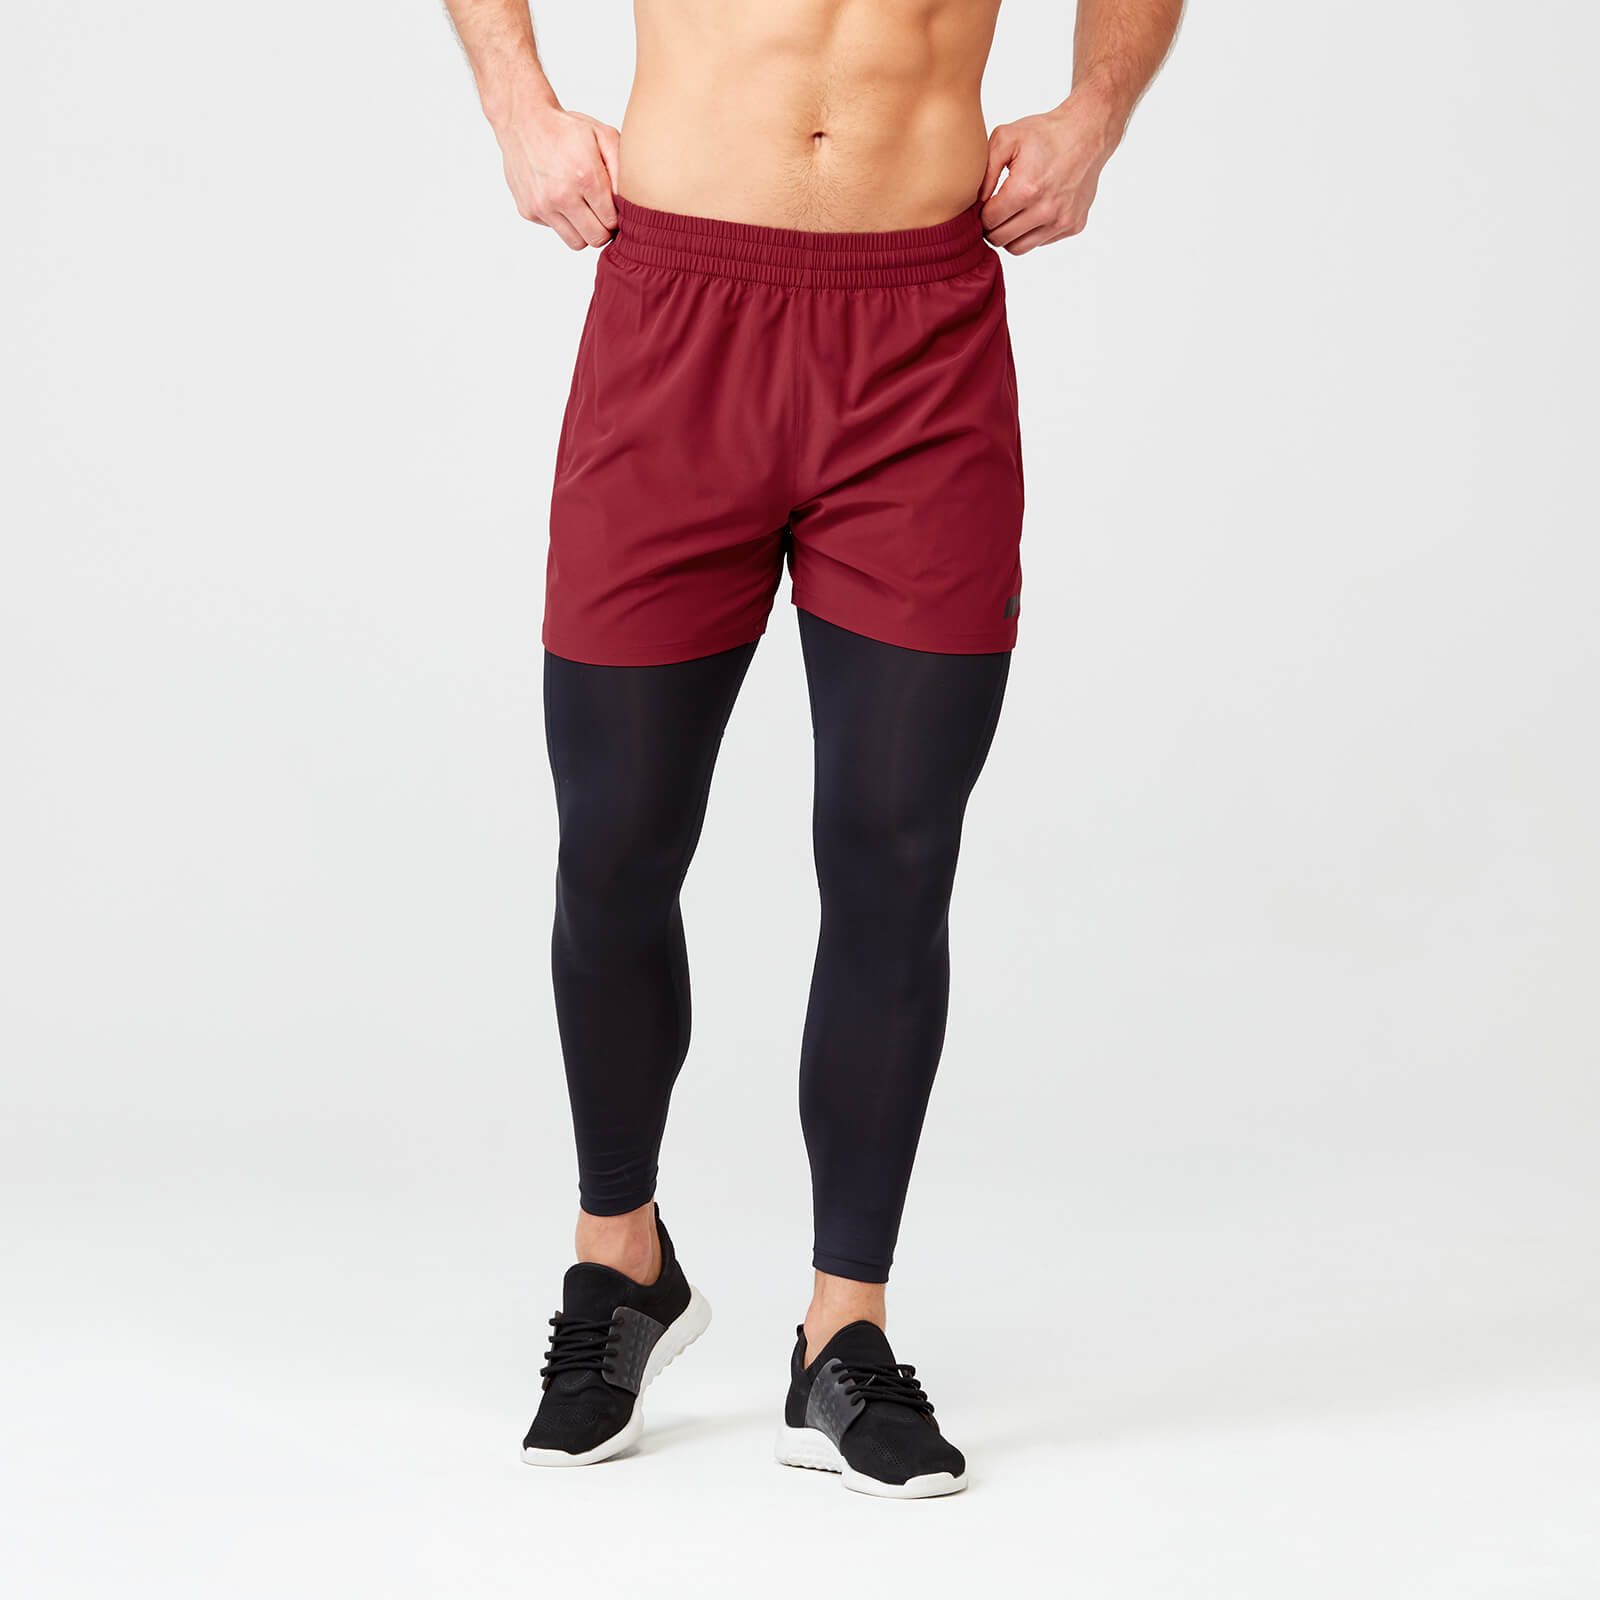 Sprint Shorts - Red - XL